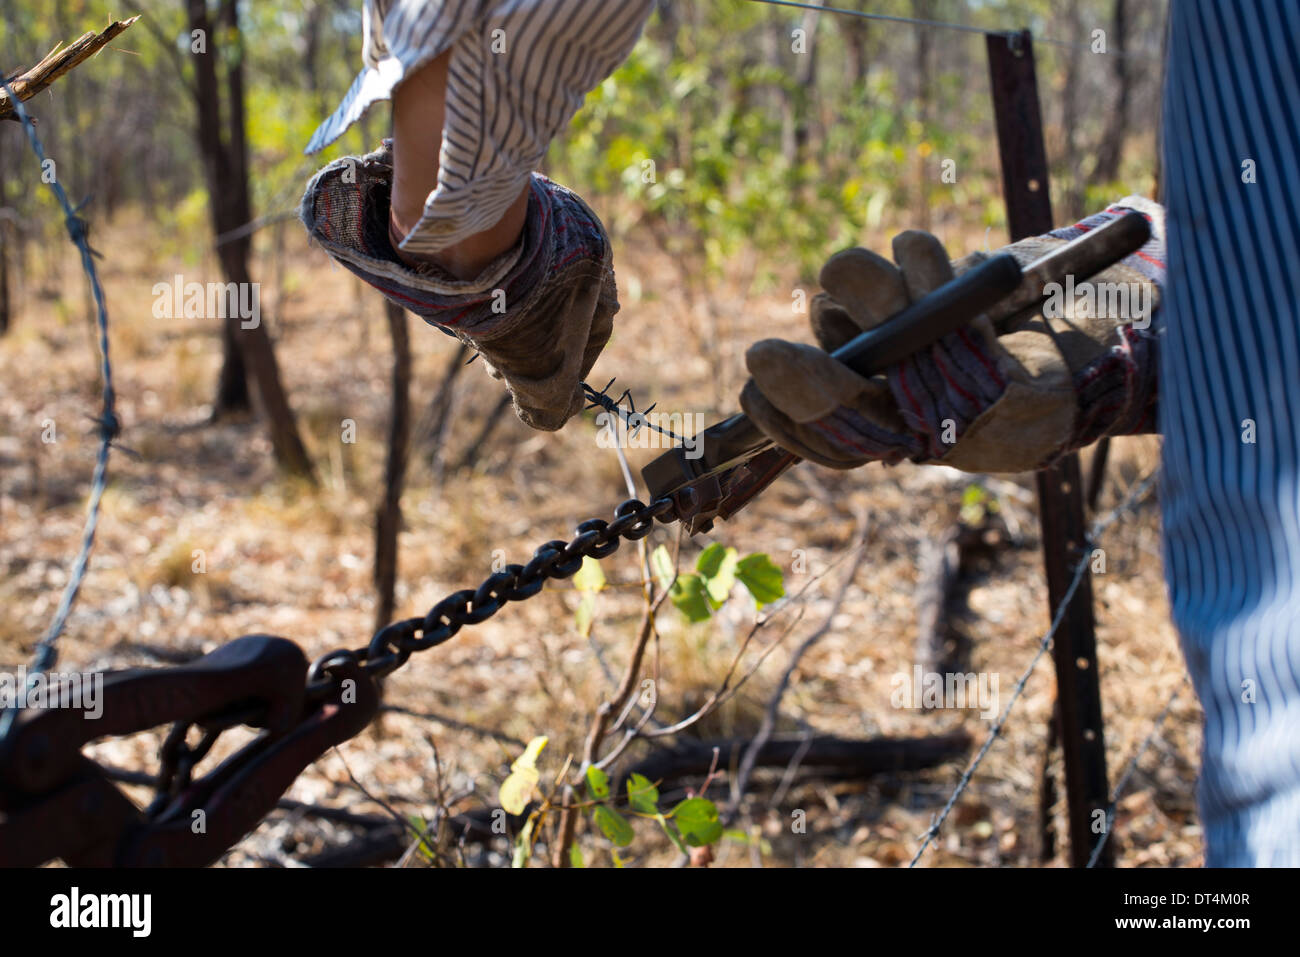 Fence Wire Strainer Stock Photos & Fence Wire Strainer Stock Images ...